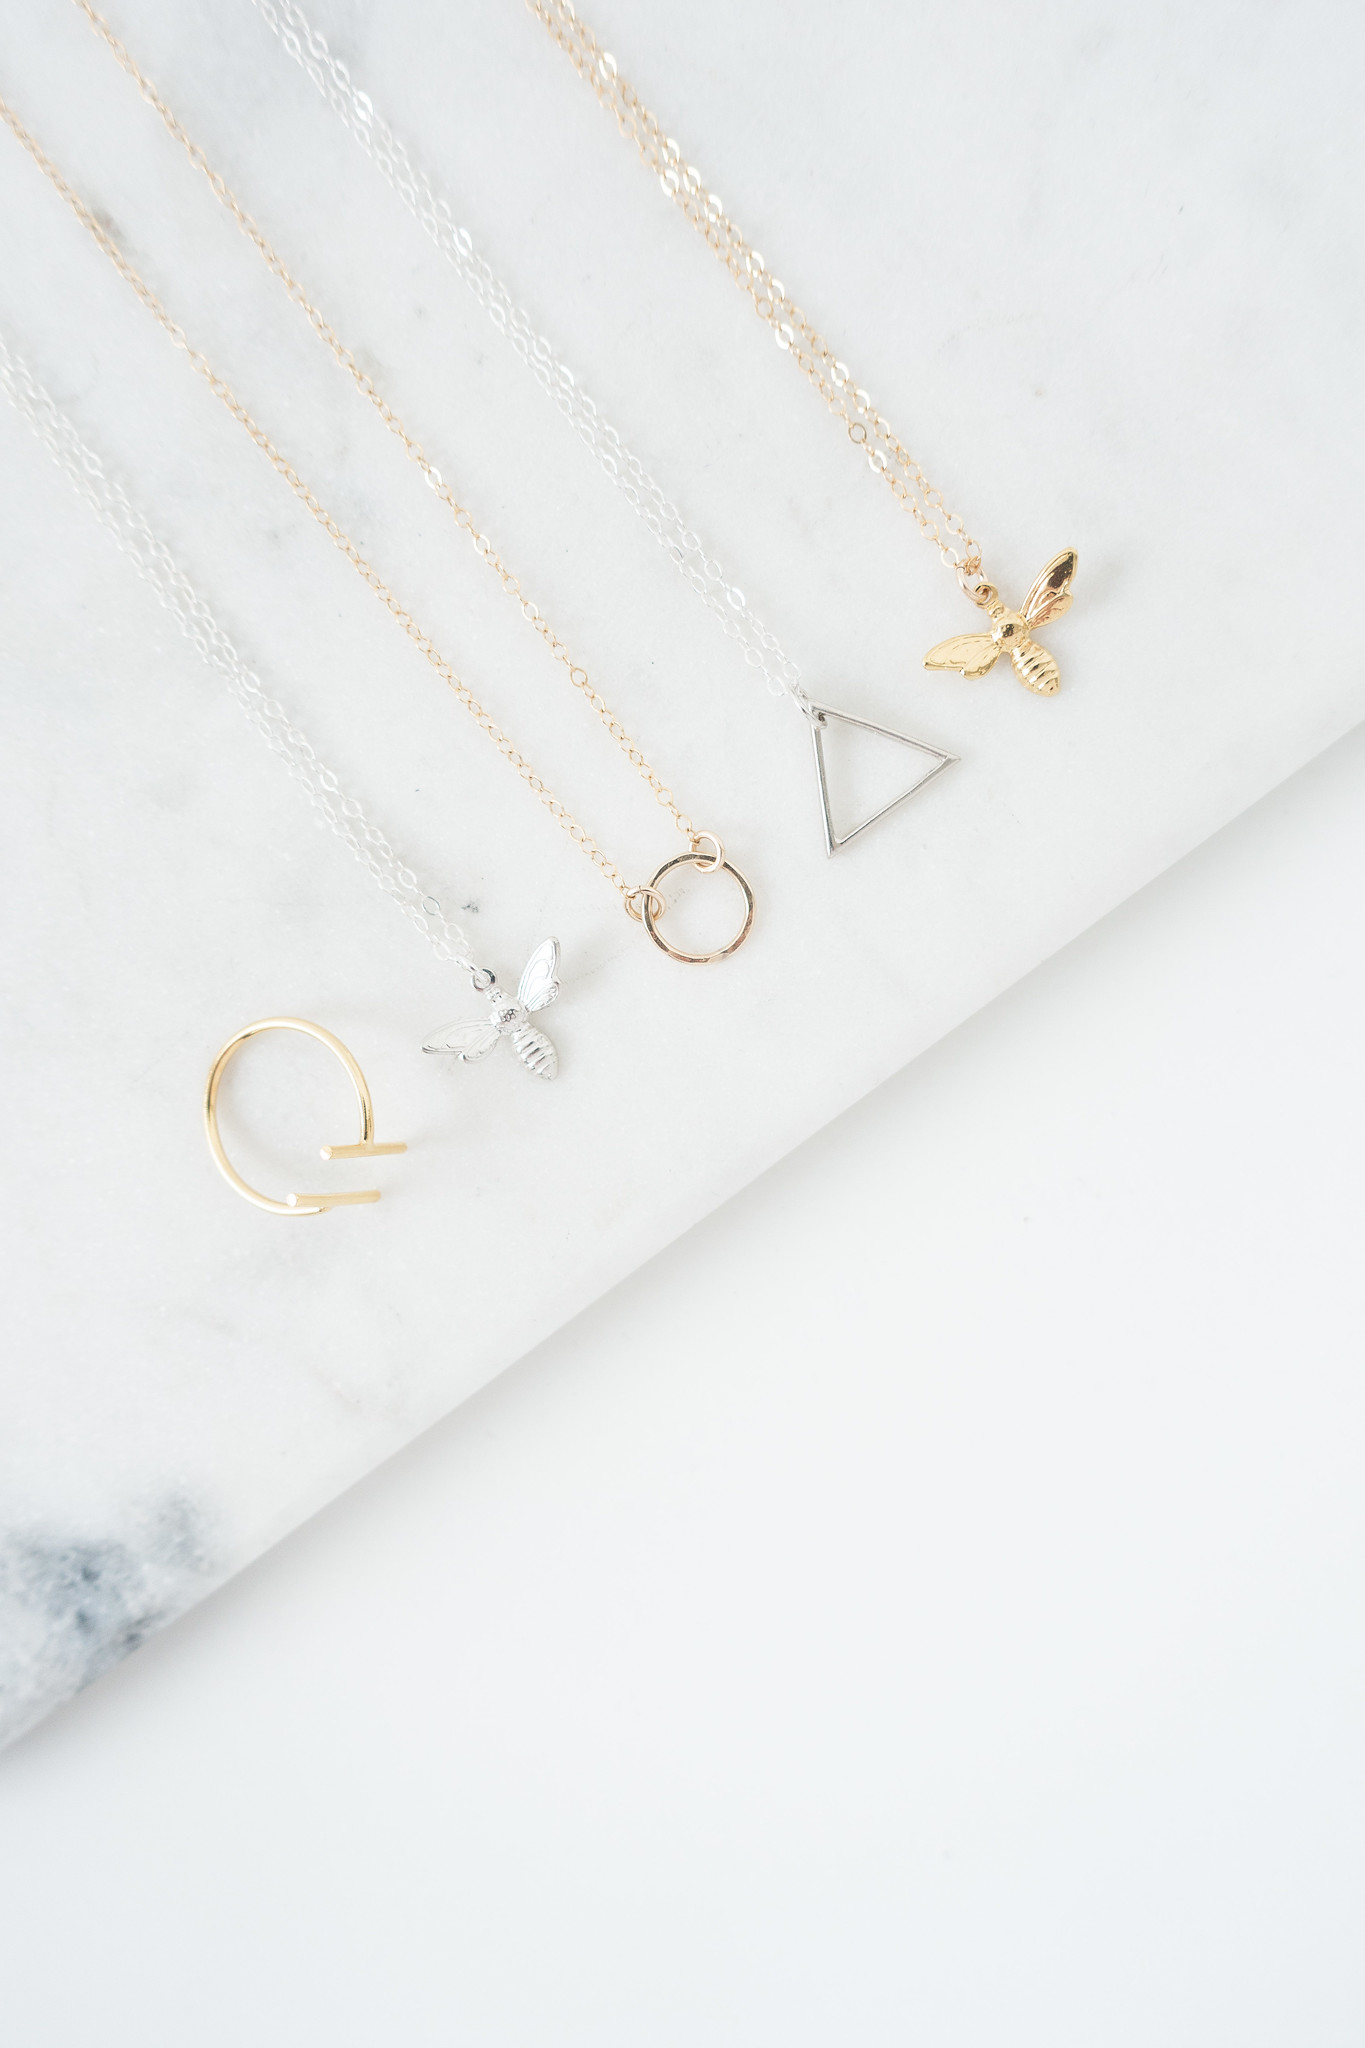 Your Jewellery Questions Answered